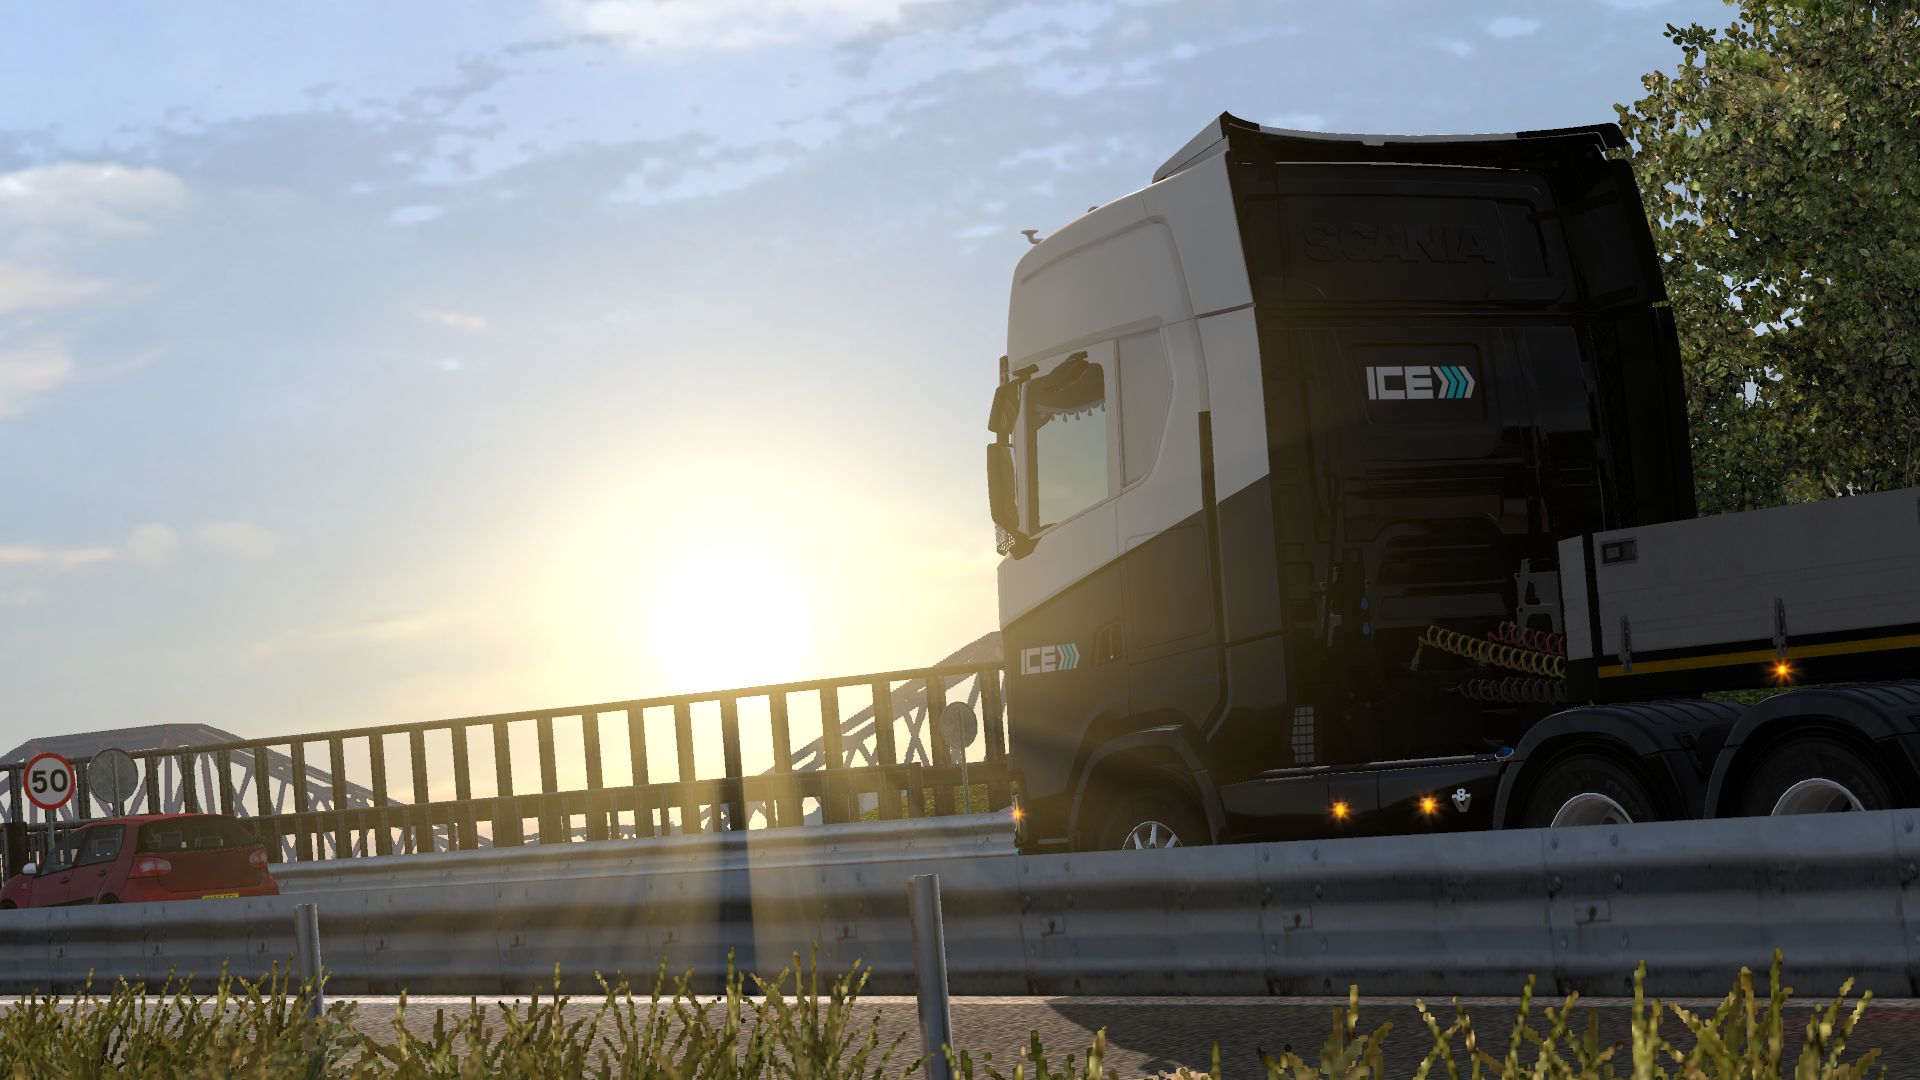 ets2_20190609_162701_00.png